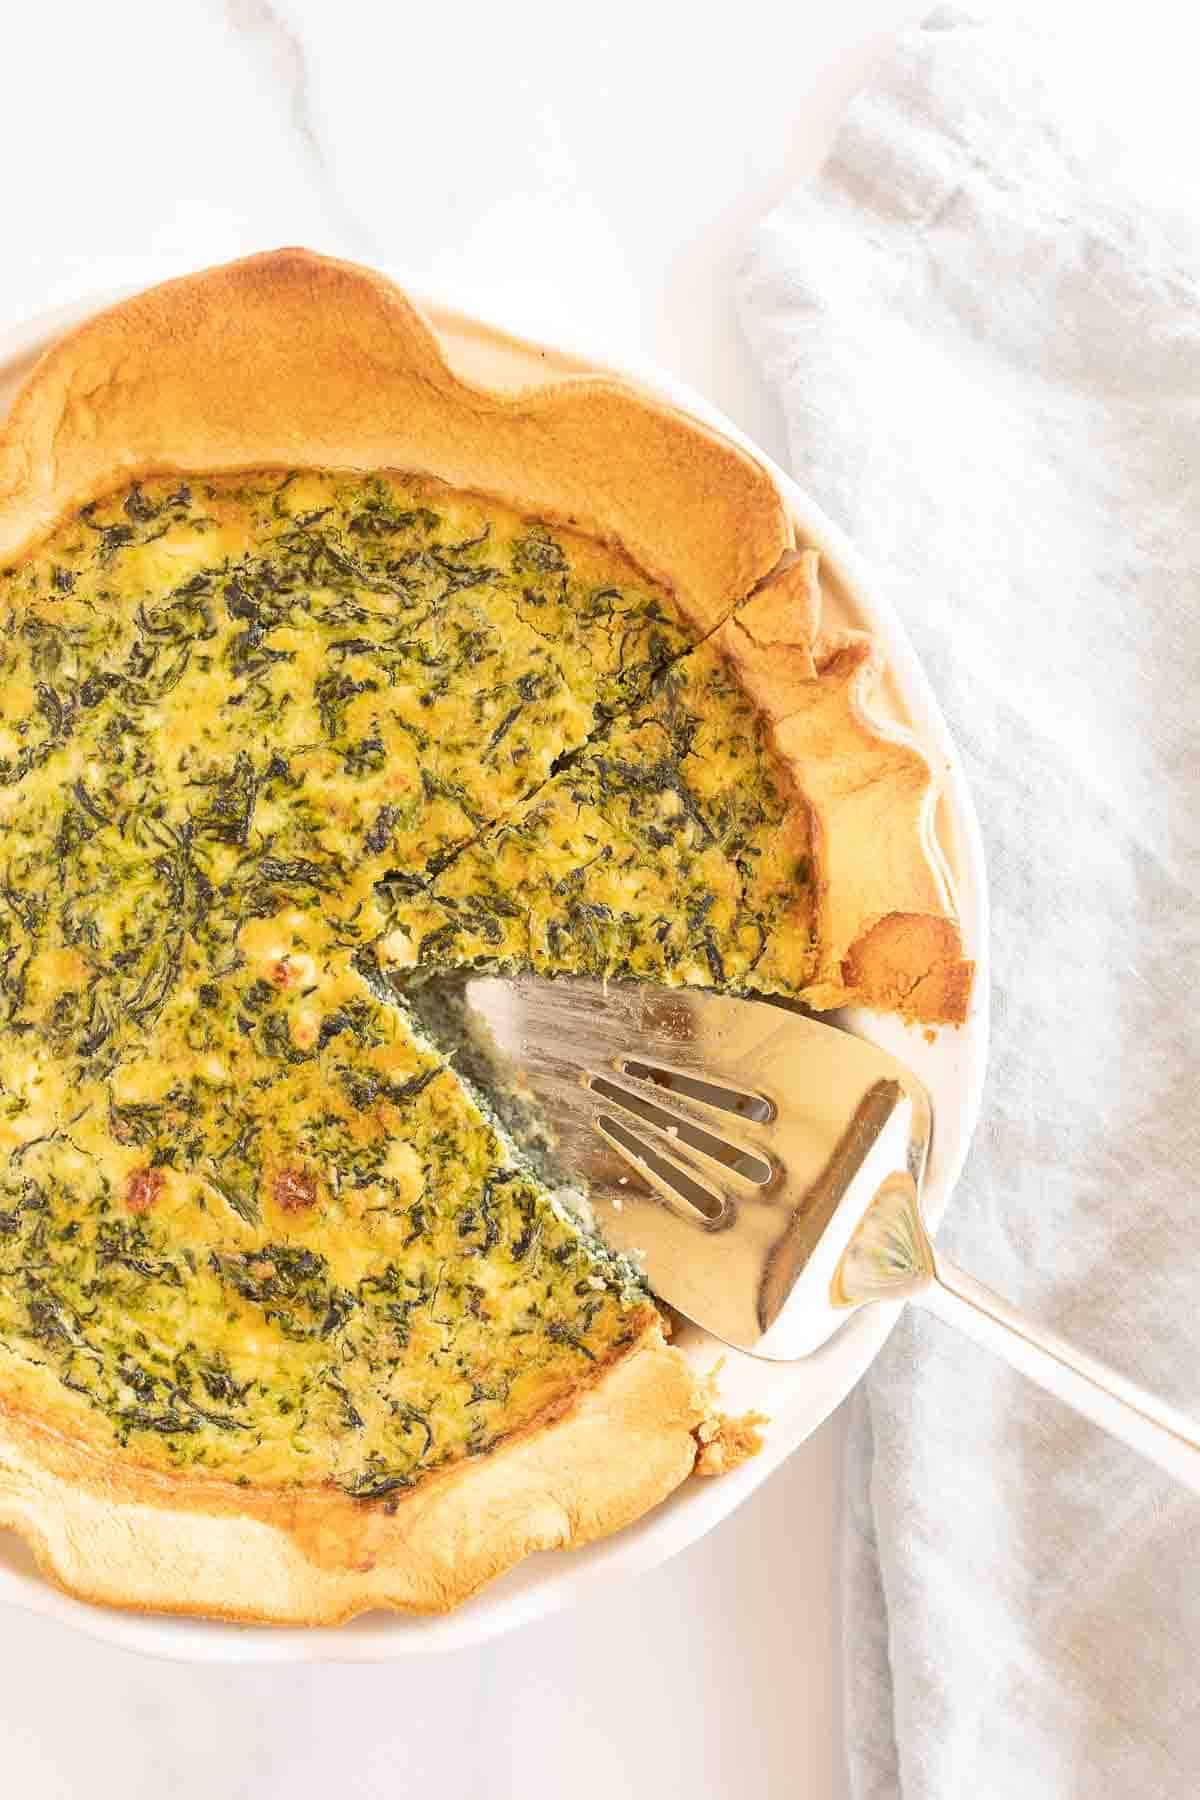 A spinach and feta quiche in a white pie dish, with one slice removed.